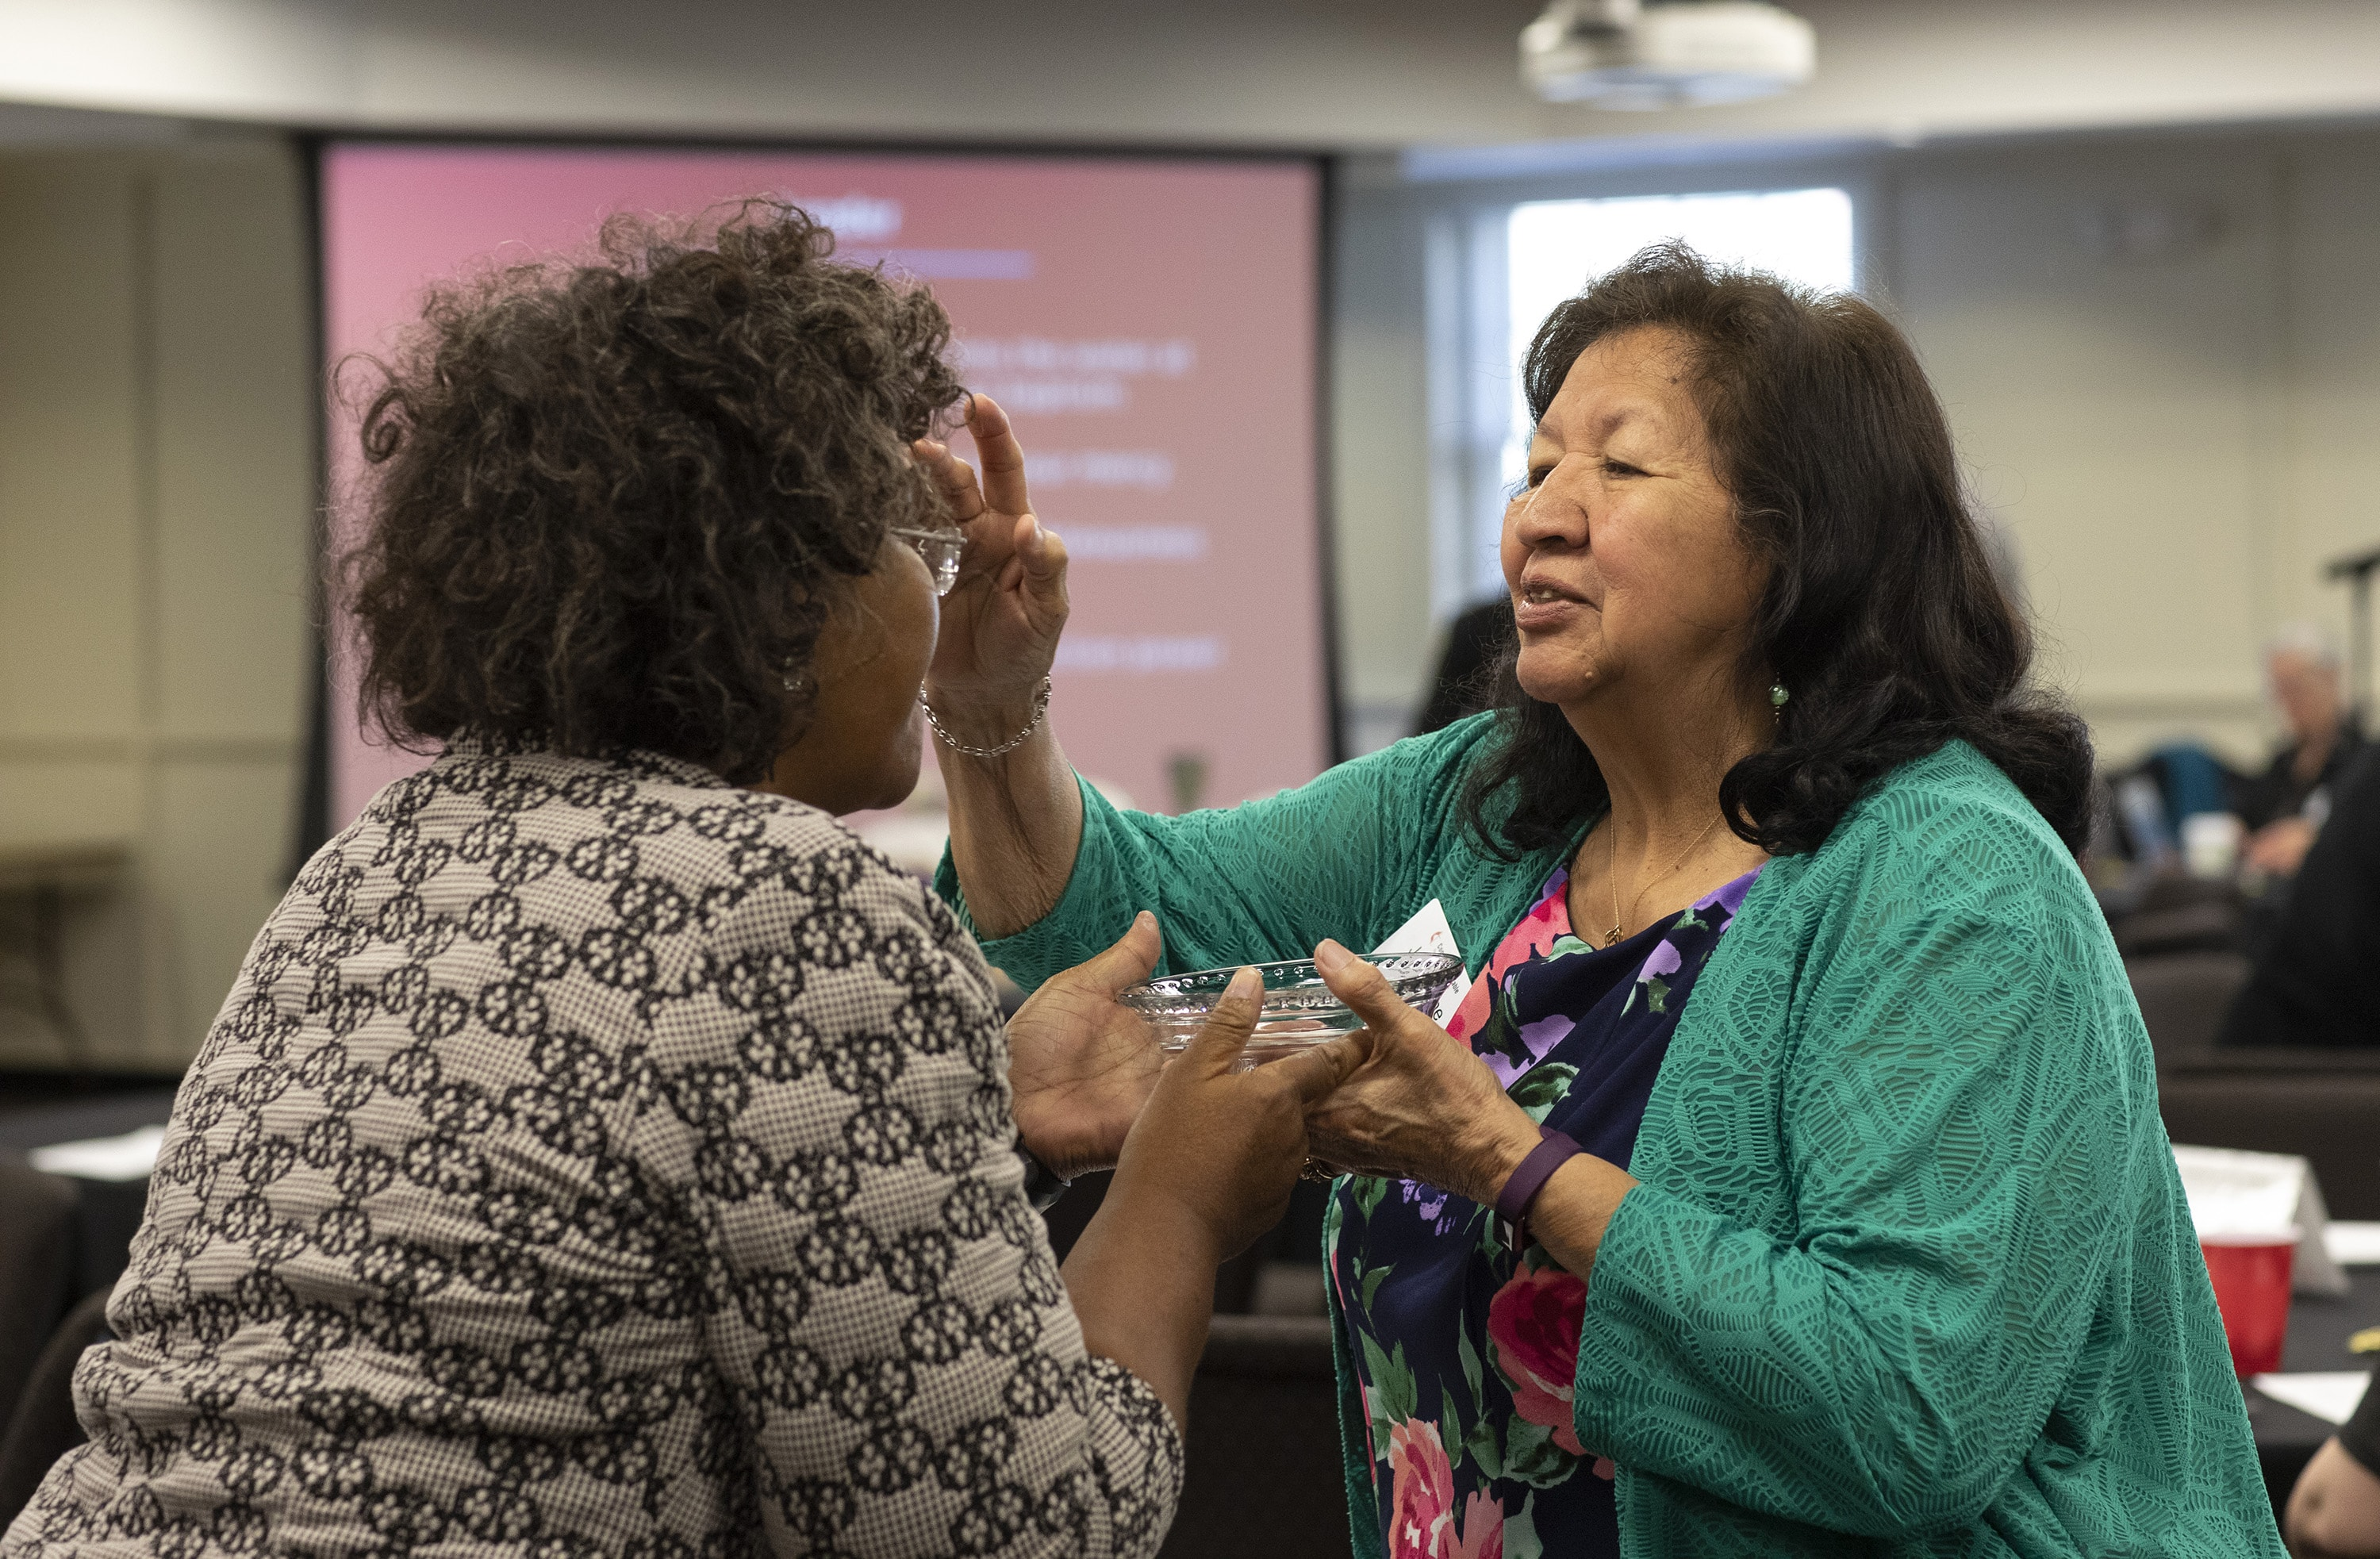 Josephine Deere, right, blesses fellow Connectional Table member Benedita Penicela Nhambiu during a service of baptism remembrance on April 3 at the Connectional Table meeting in Nashville, Tenn. Photo by Kathleen Barry, UMNS.